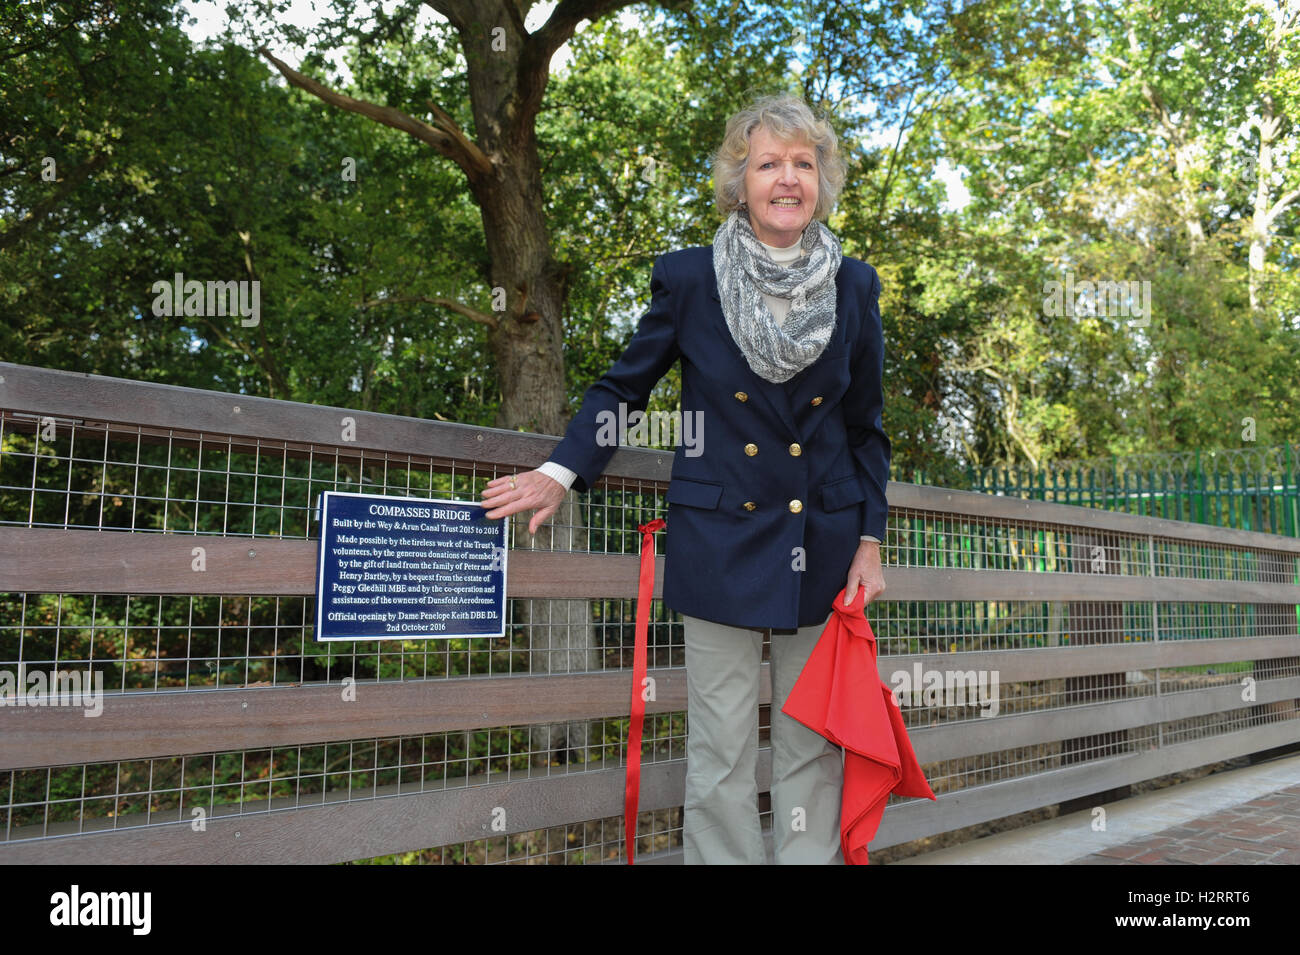 Actor Dame Penelope Keith unveils a commemorative plaque on behalf of the Wey & Arun Canal Trust during the - Stock Image